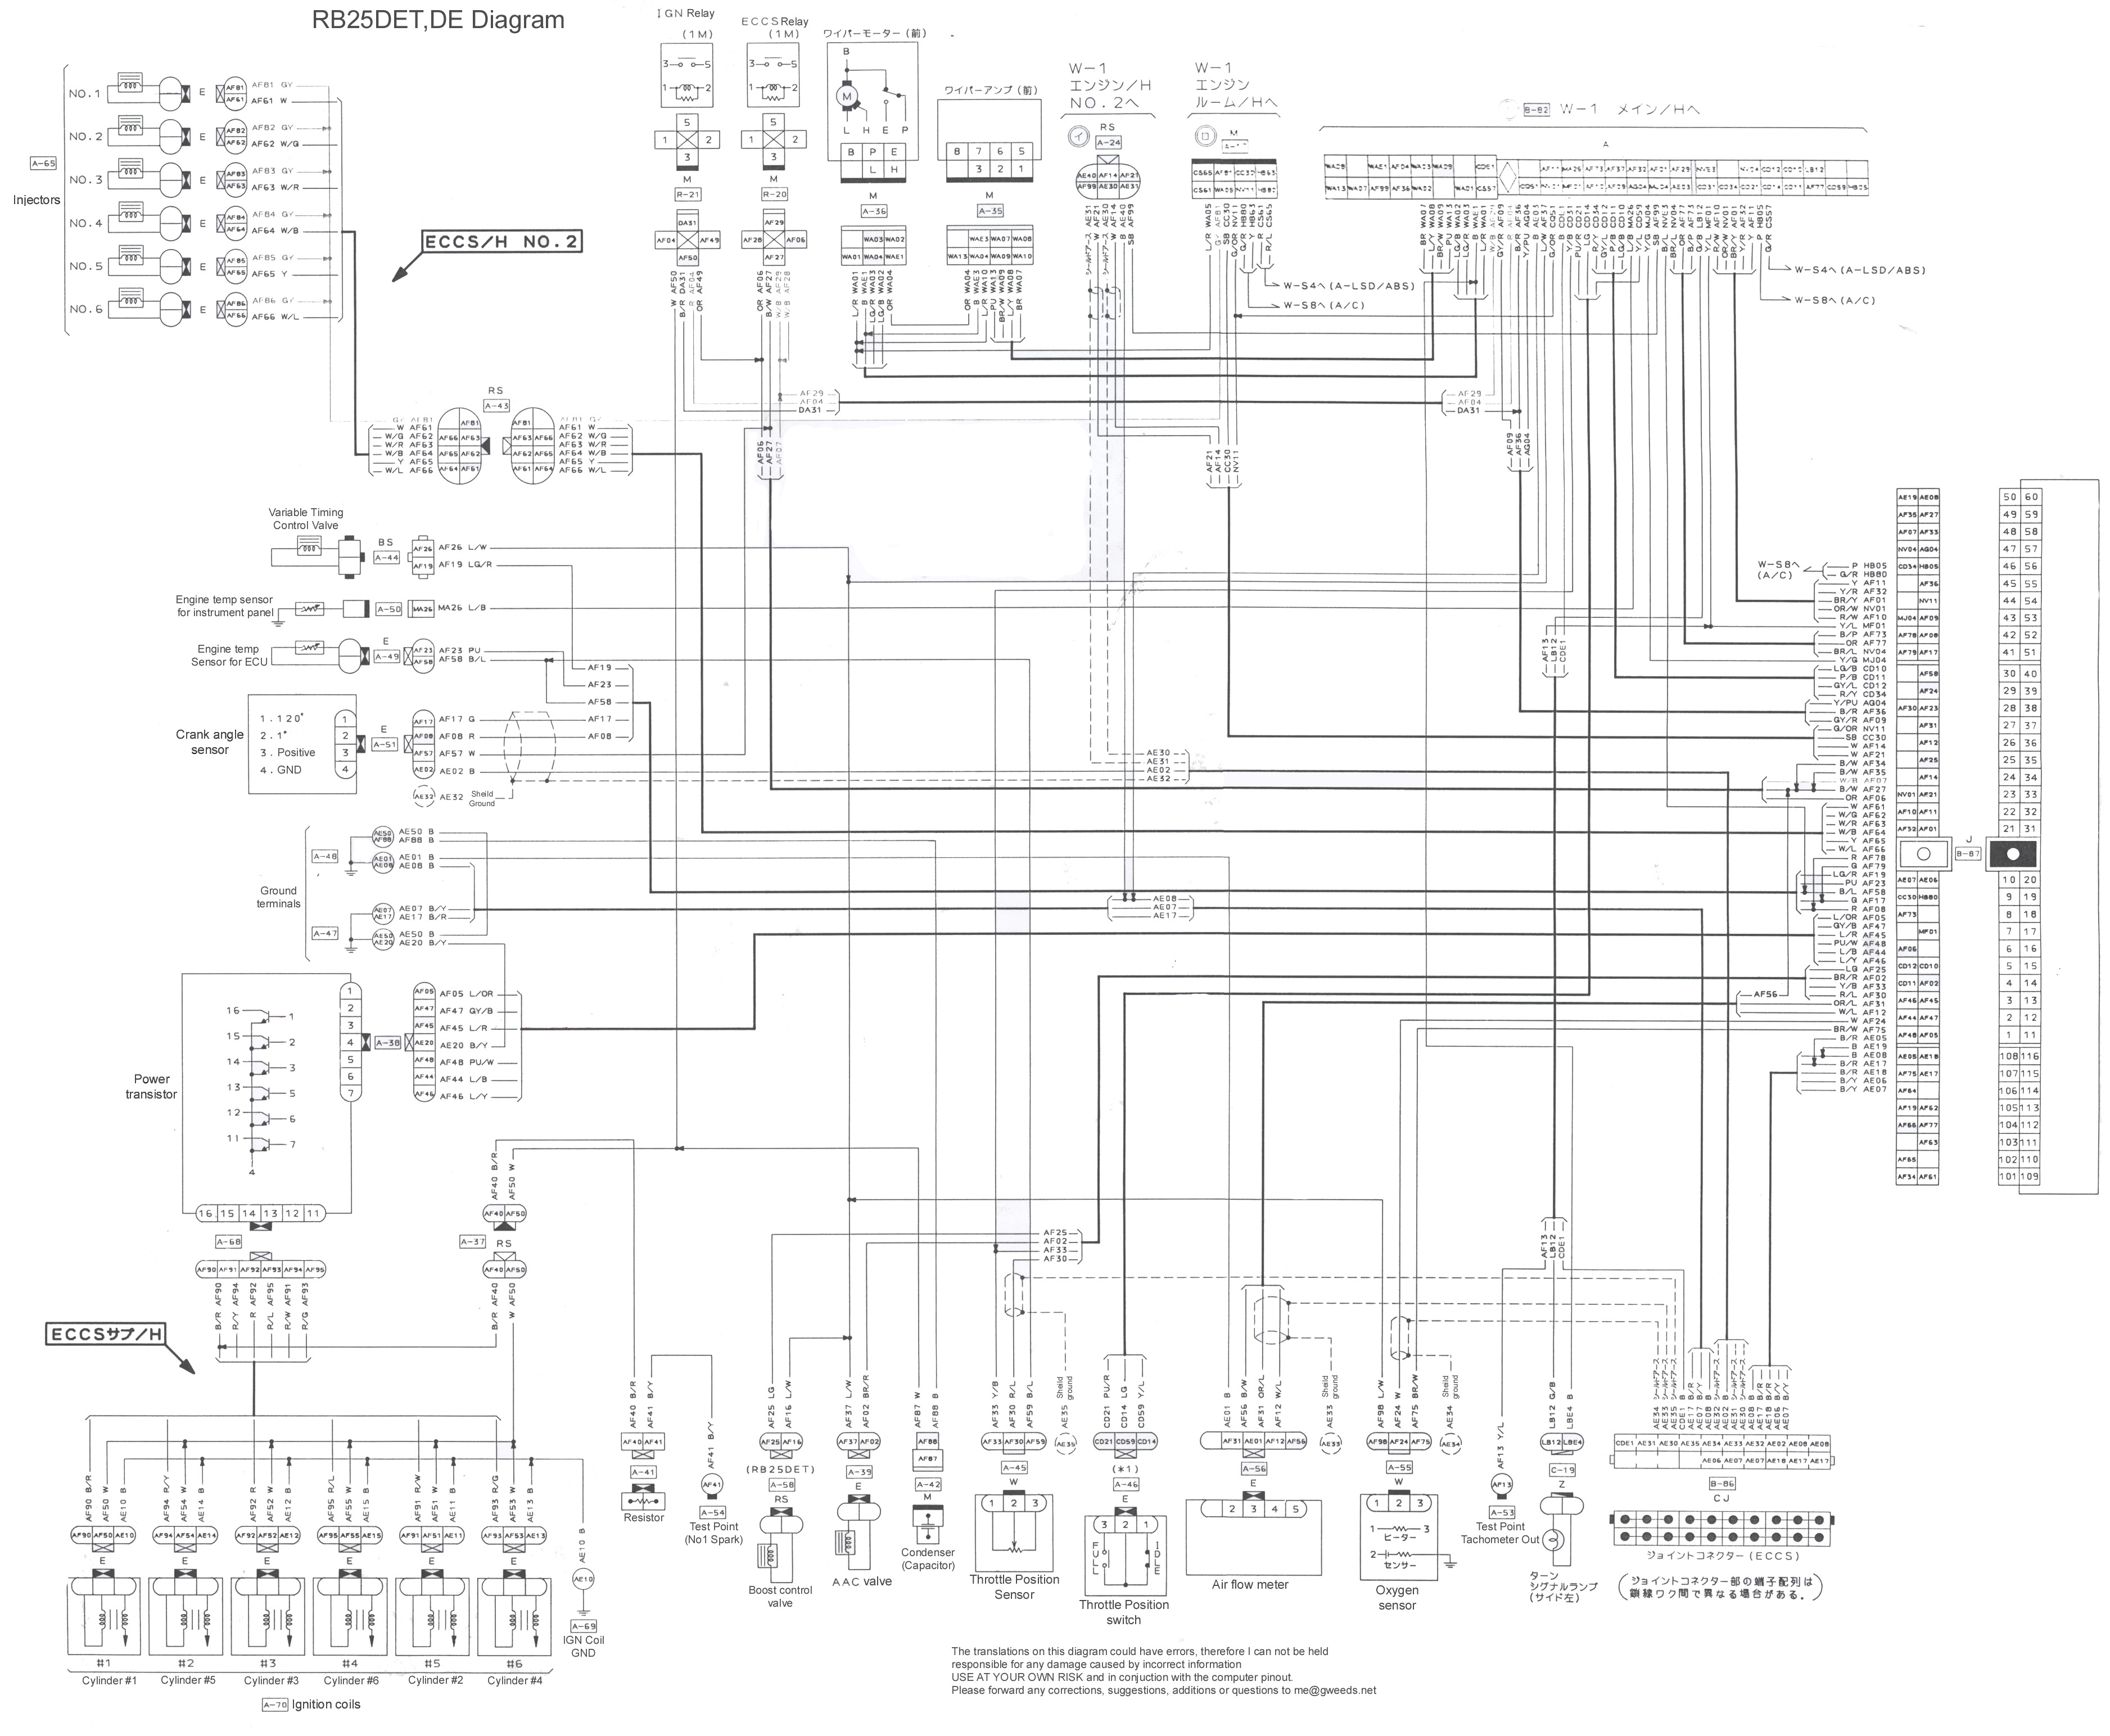 apexi safc wiring diagram with Apexi Vafc Wiring Diagram on Rb25det Ecu Wiring also Tcpi 20760 Emergency Light Wiring Diagram furthermore Rb20det Coils Wiring Diagram besides 1989 Acura Legend Wiring Diagram furthermore 308061 Got A Safc Ii.